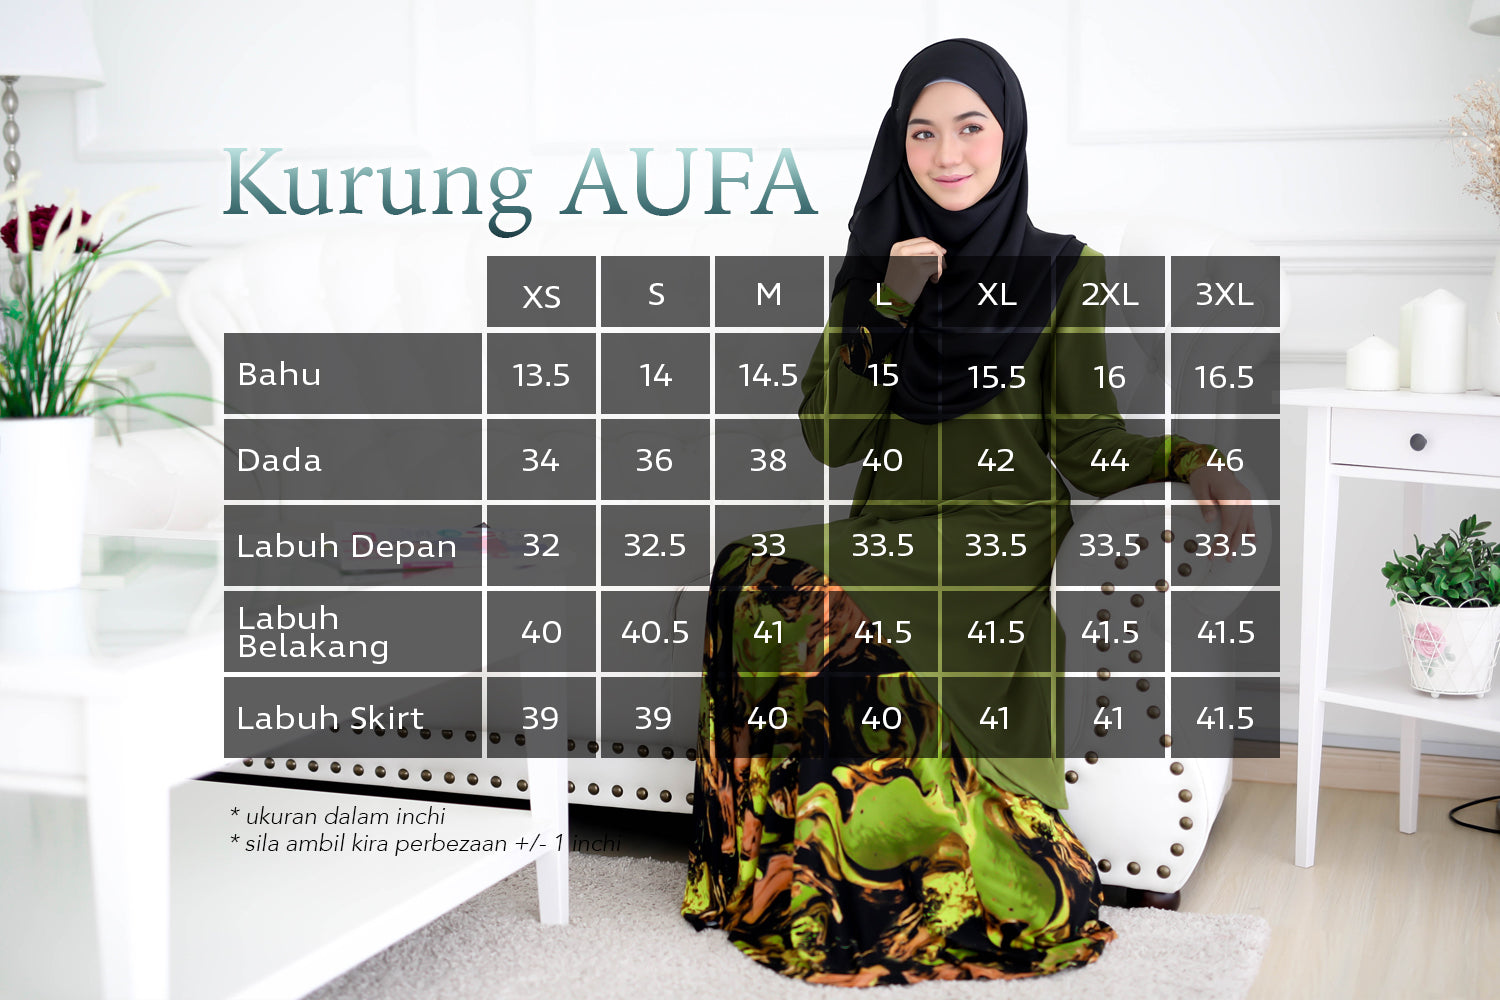 Kurung AUFA measurement chart